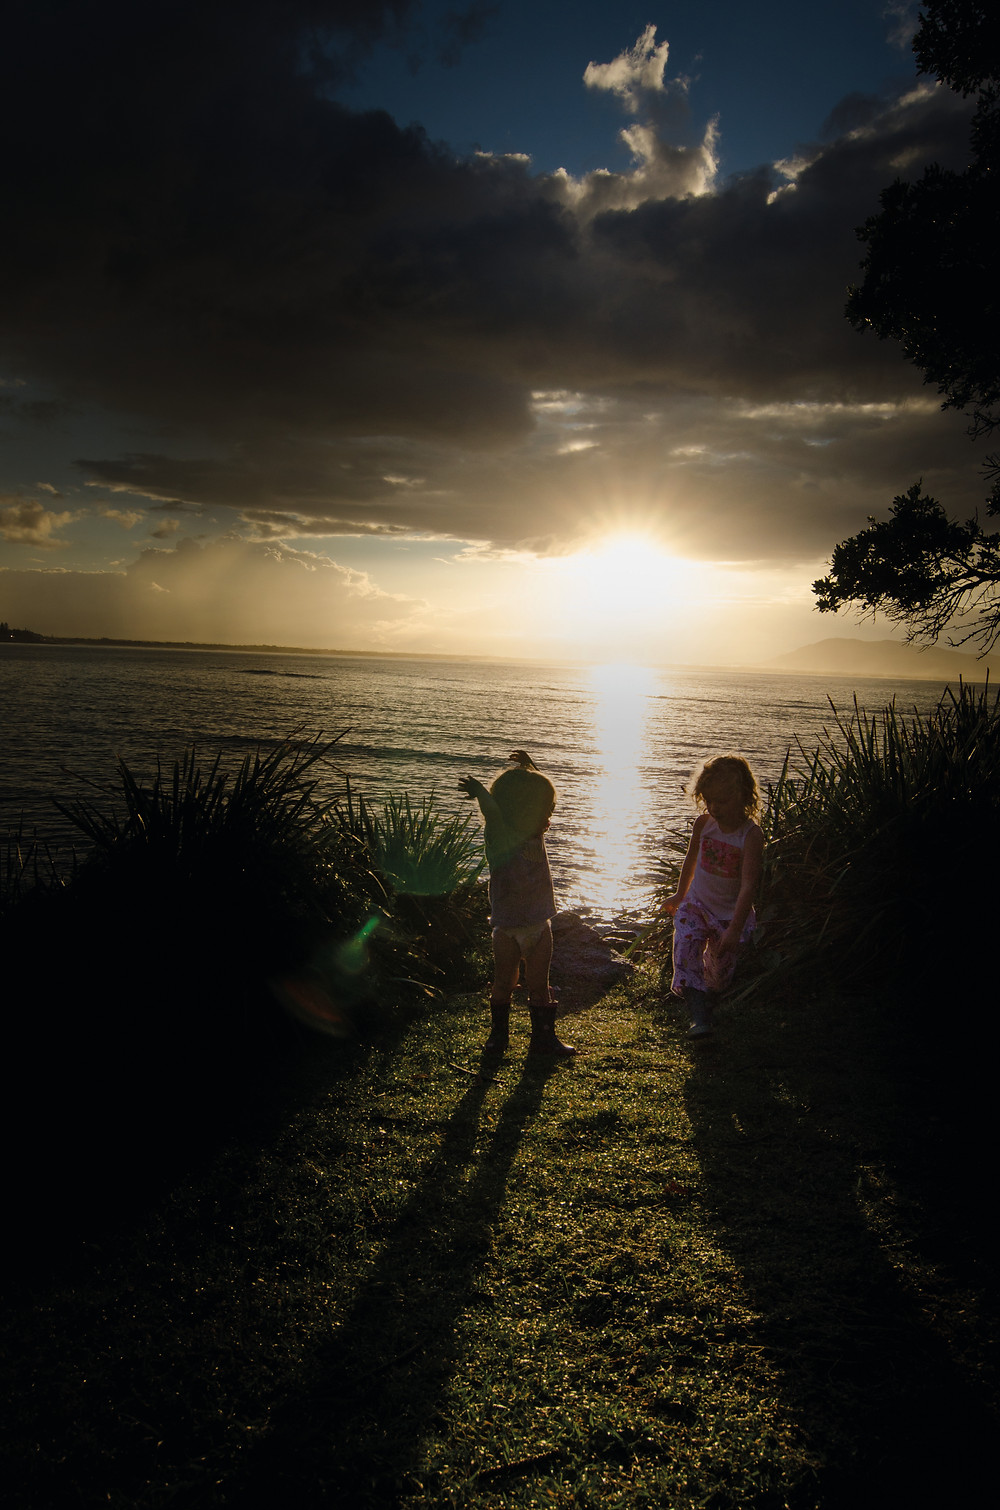 Ava and Finn soaking up the sunset. Trial Bay, South West Rocks